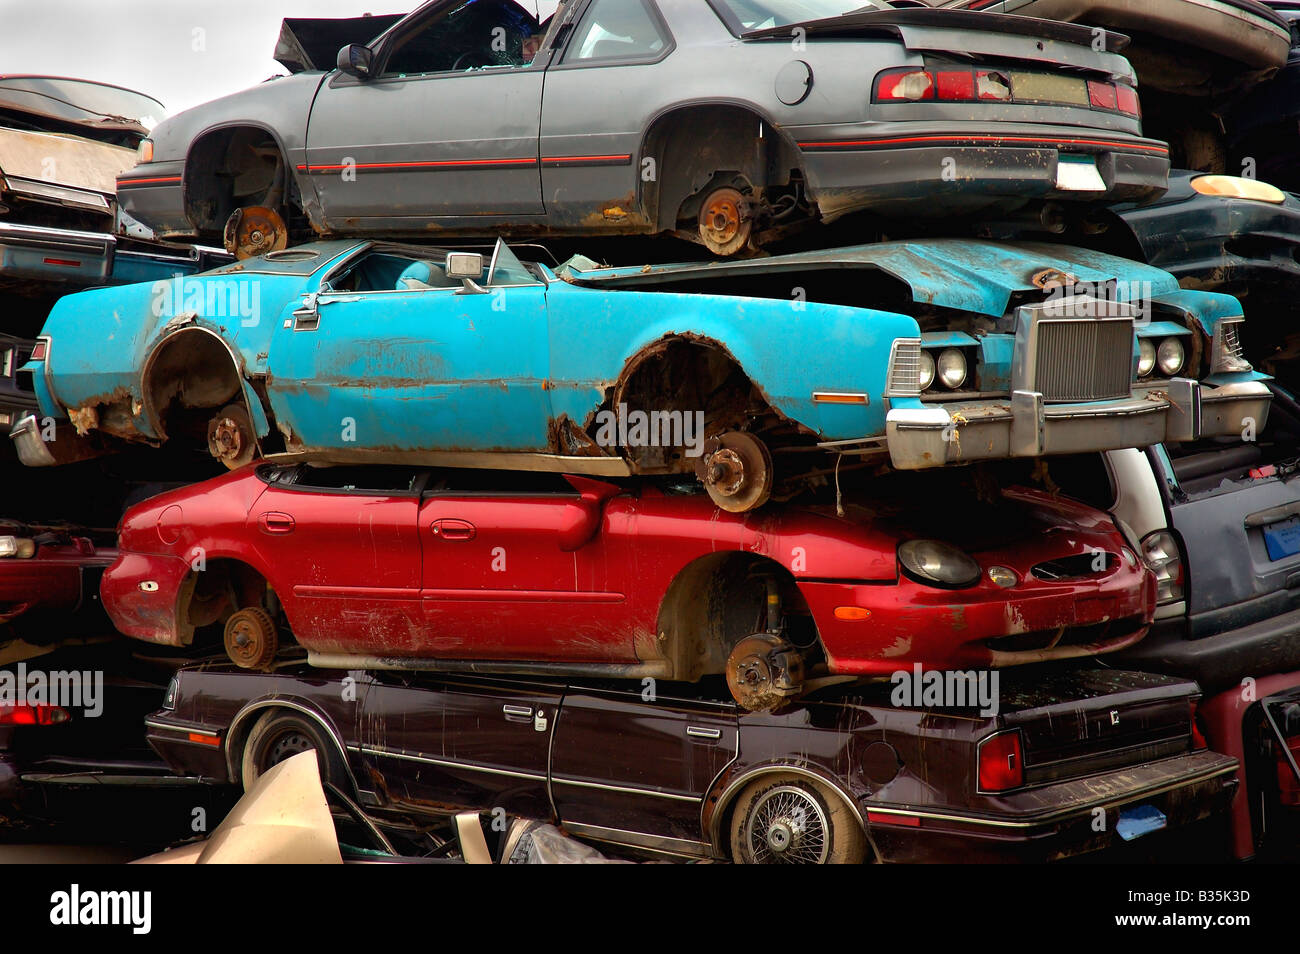 Stacked Junk Cars Stock Photo: 19179089 - Alamy